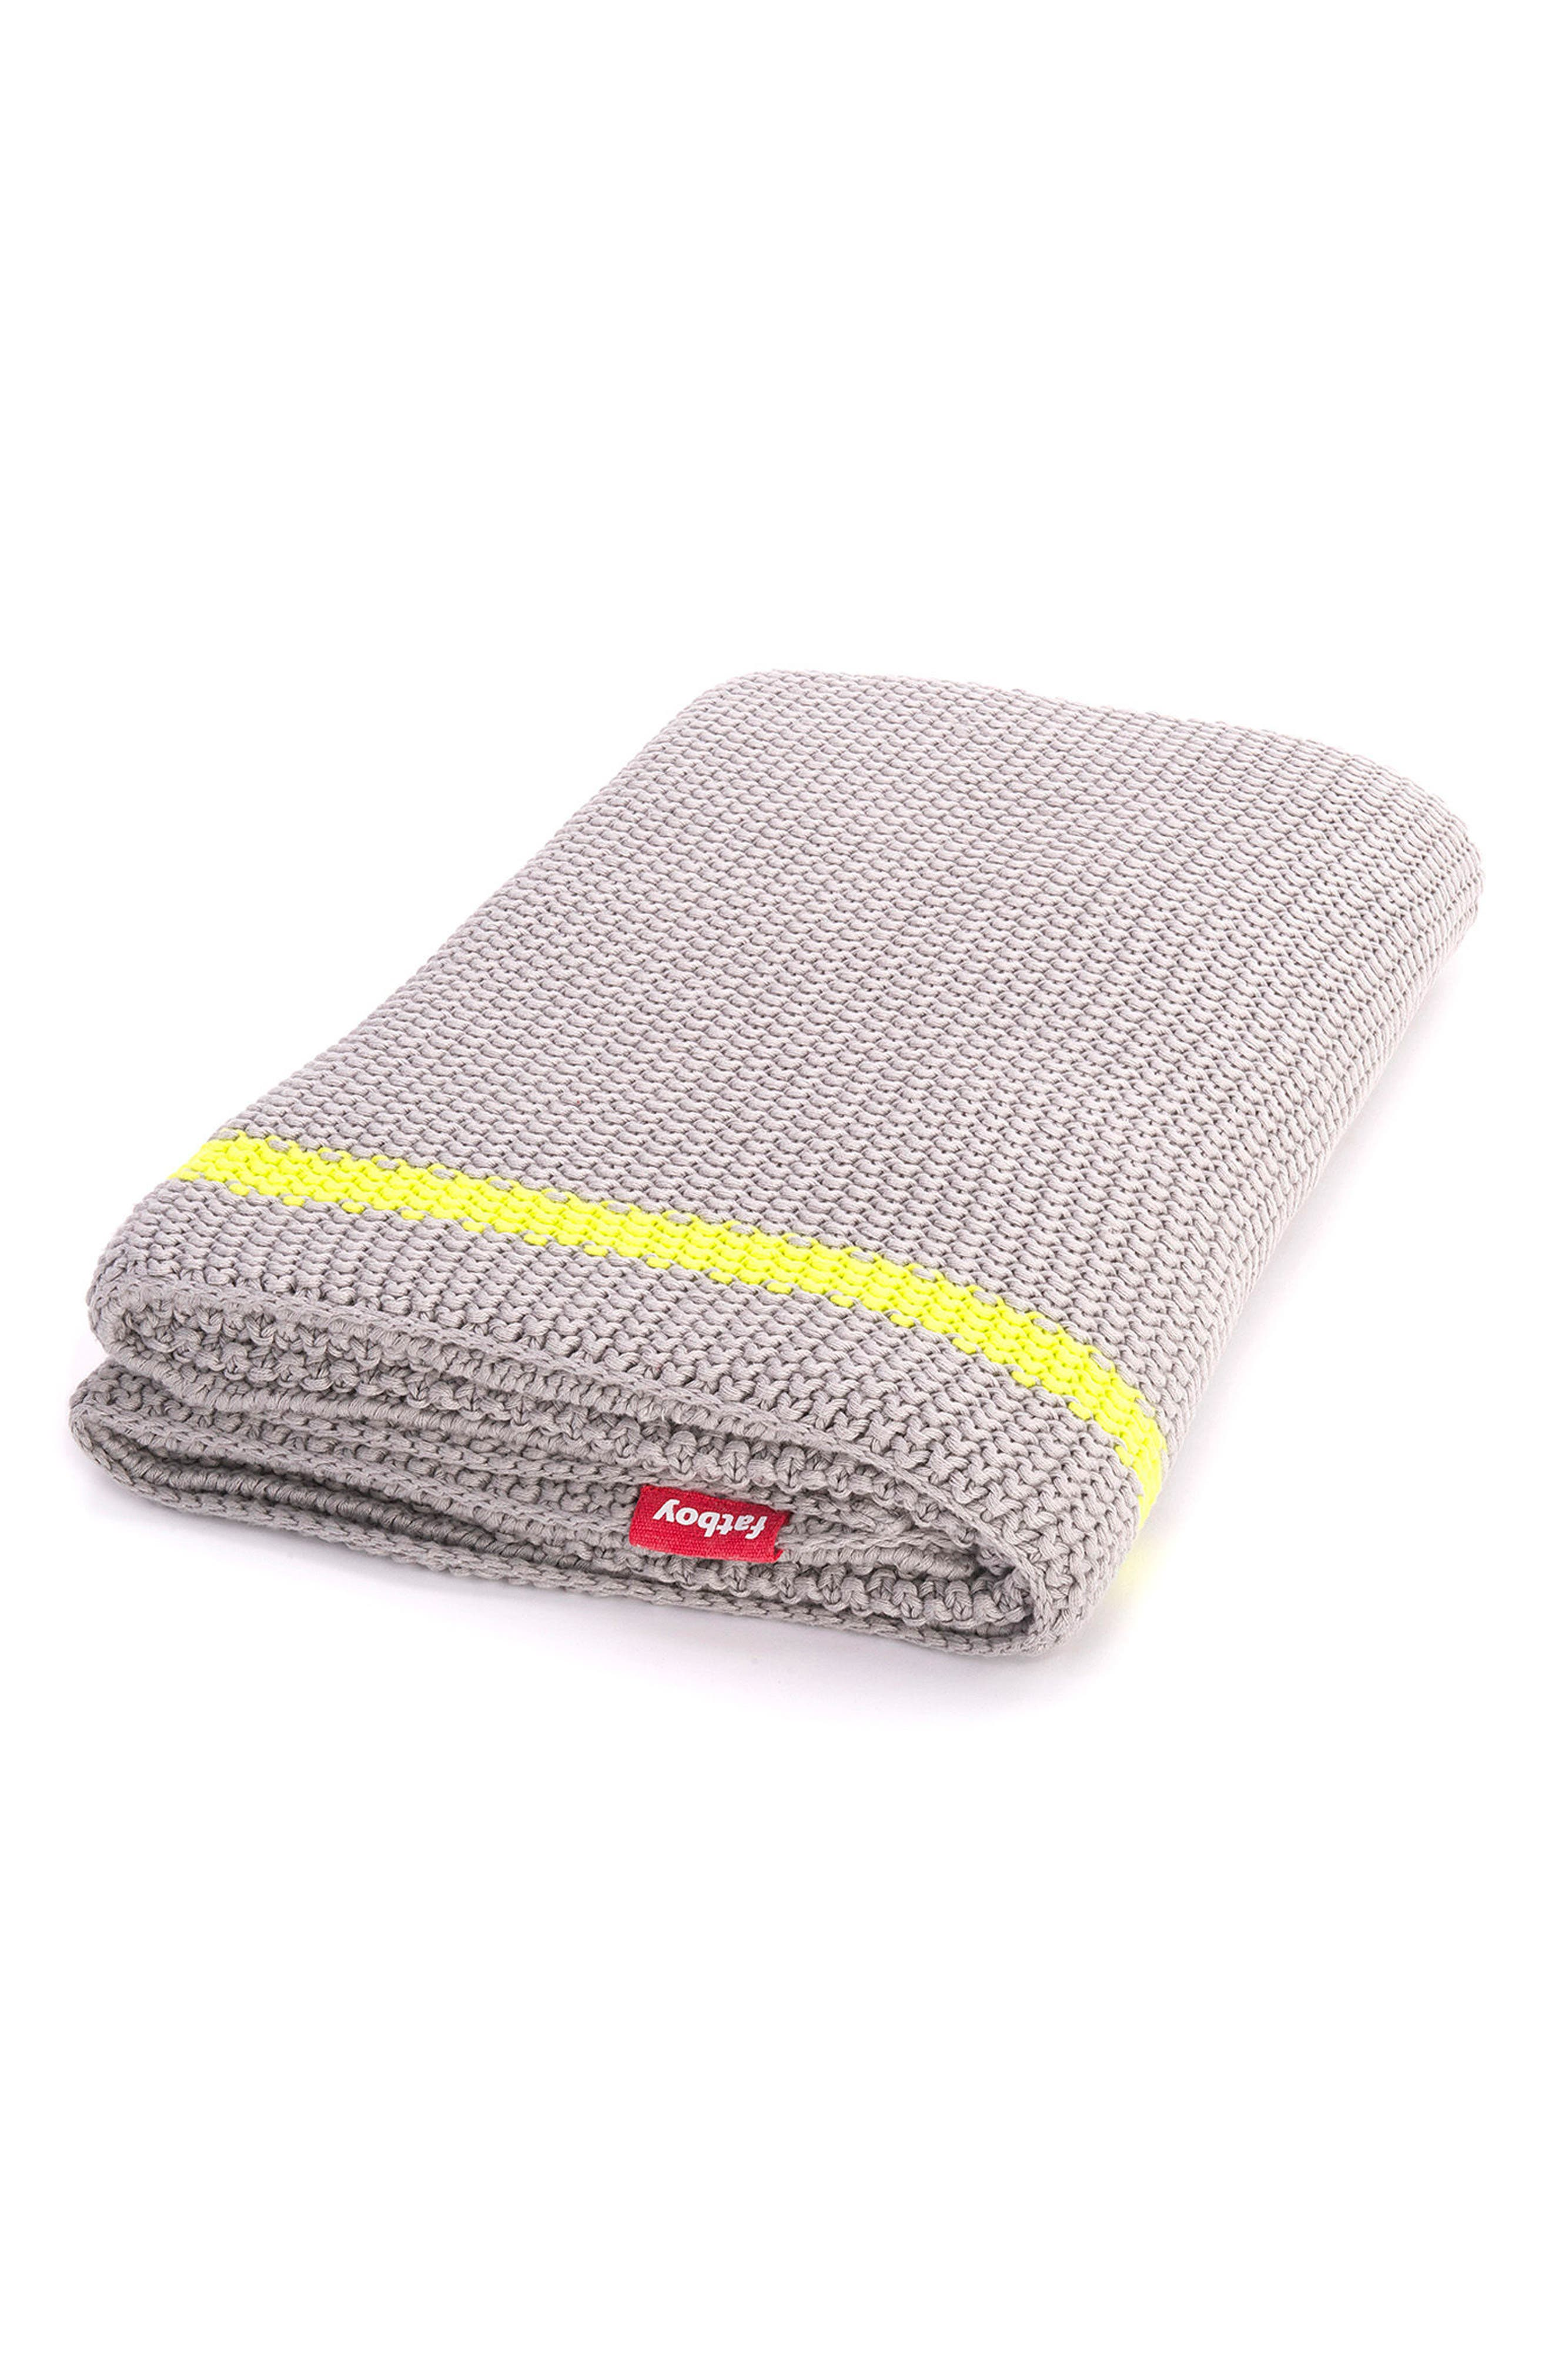 Klaid Throw,                             Main thumbnail 1, color,                             Light Grey/ Yellow Stripe